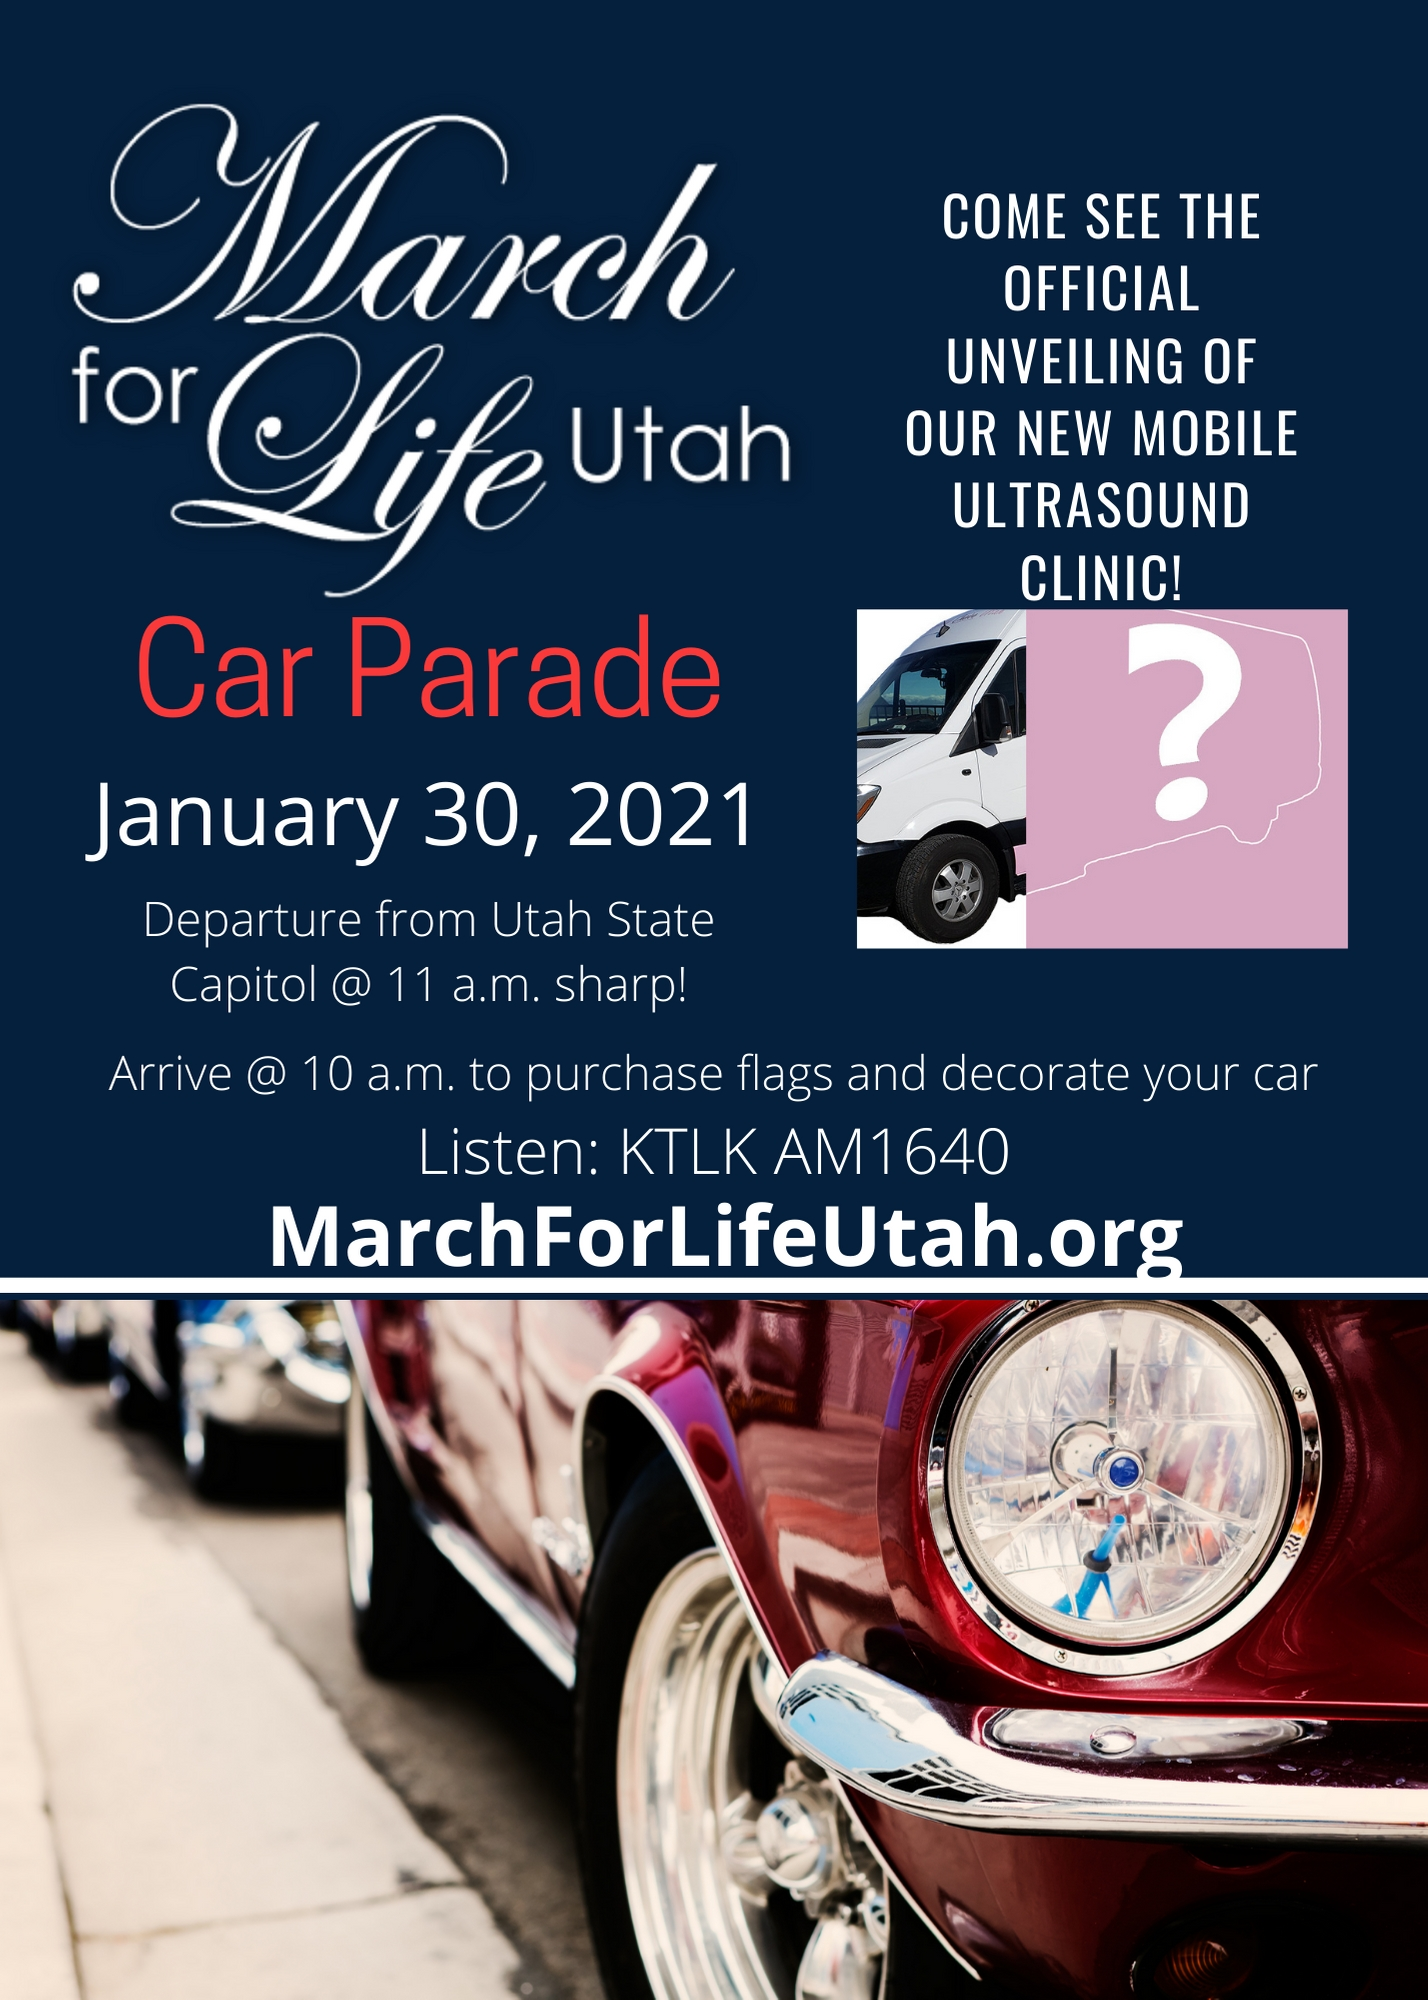 March for Life Utah